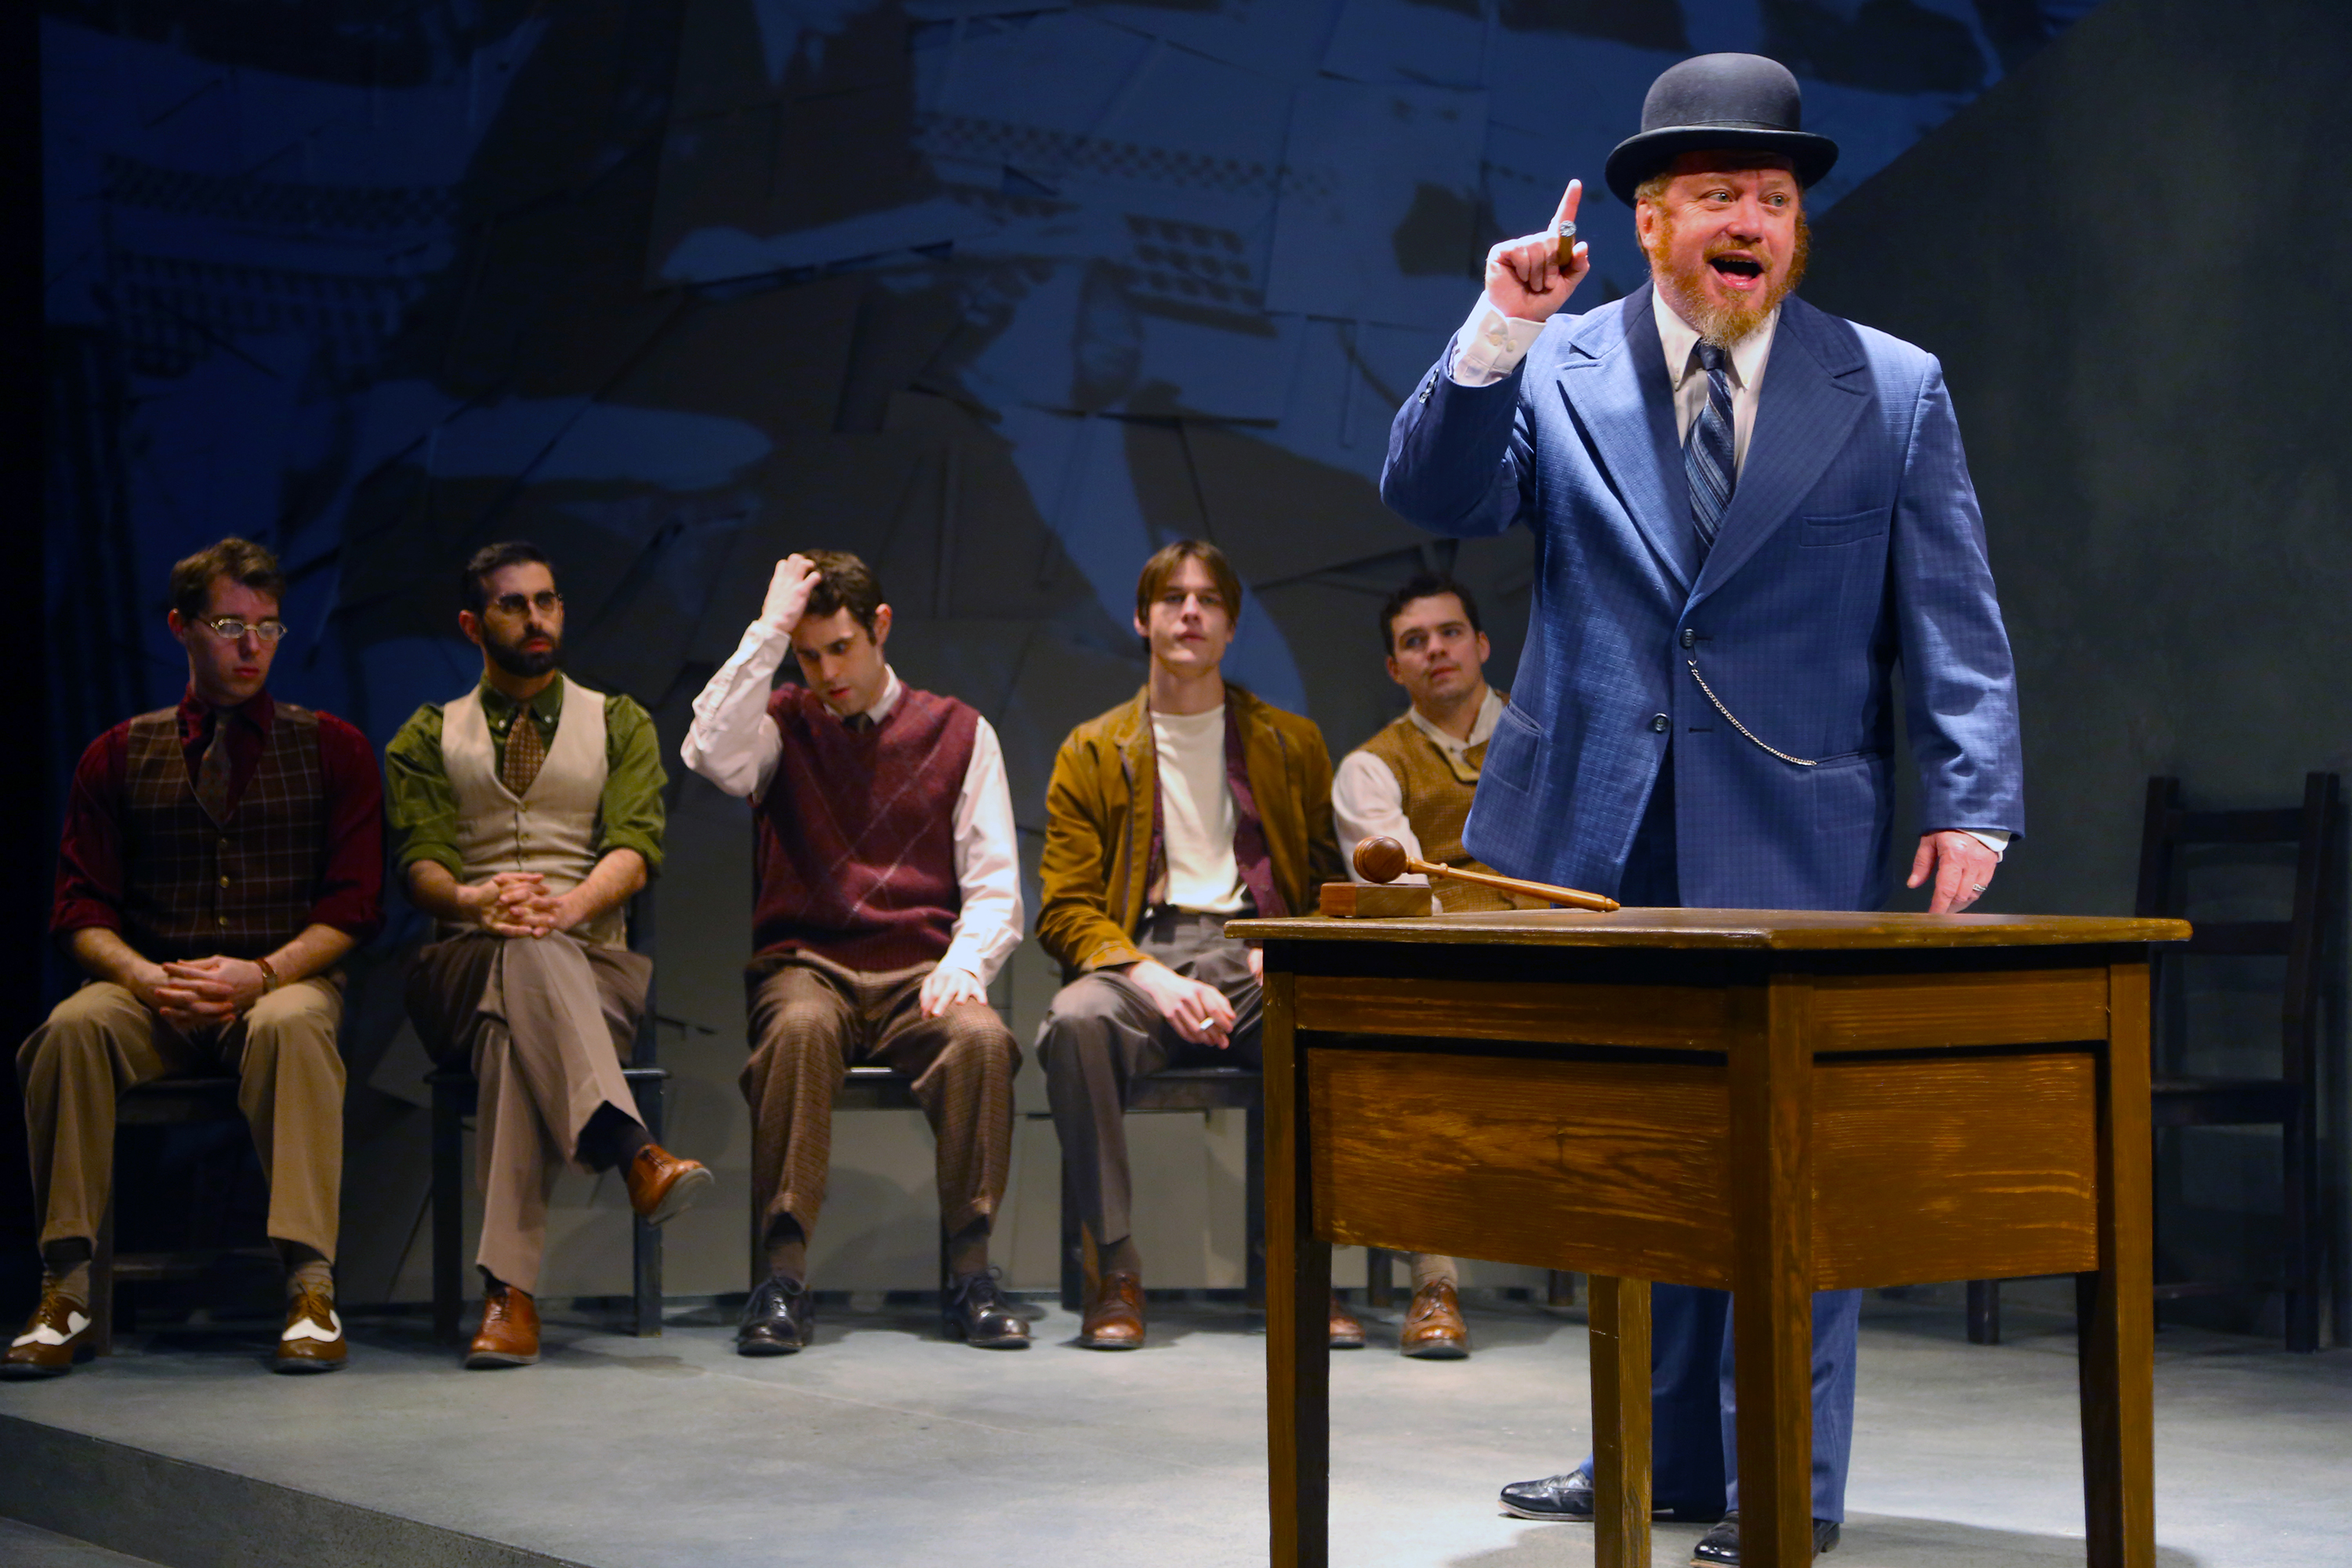 Guest artist Michael Lewis (Harry Fatt) is the union leader in Connecticut Repertory Theatre's production of 'Waiting for Lefty' by Clifford Odets, onstage through March 5 at Nafe Katter Theatre. (Gerry Goodstein for UConn)